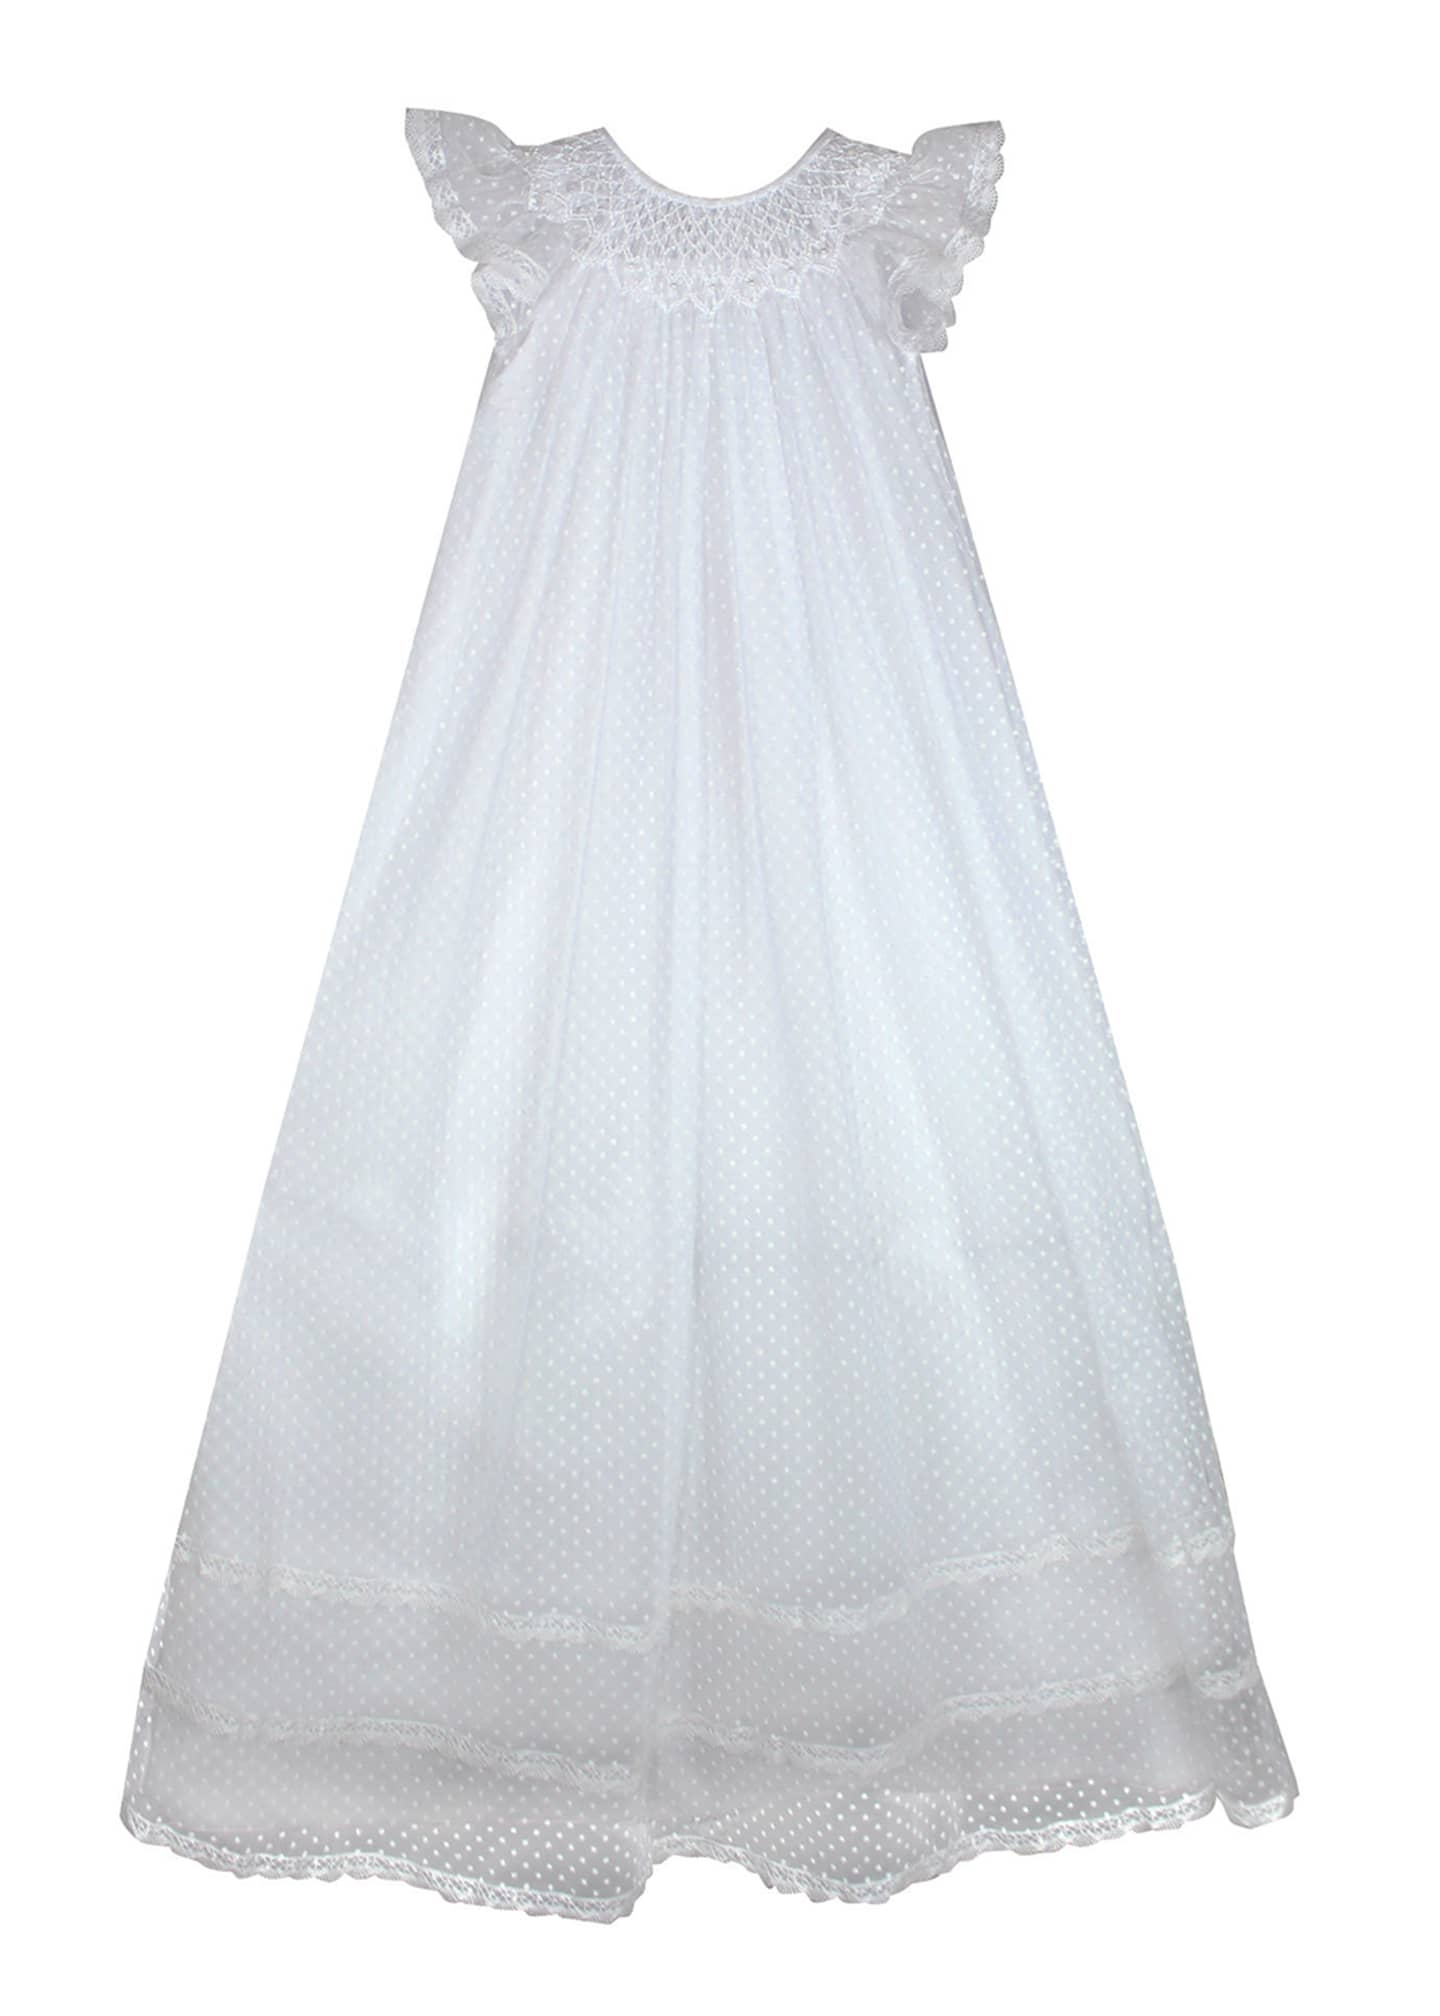 Isabel Garreton Smocked Swiss Dot Christening Gown, Size